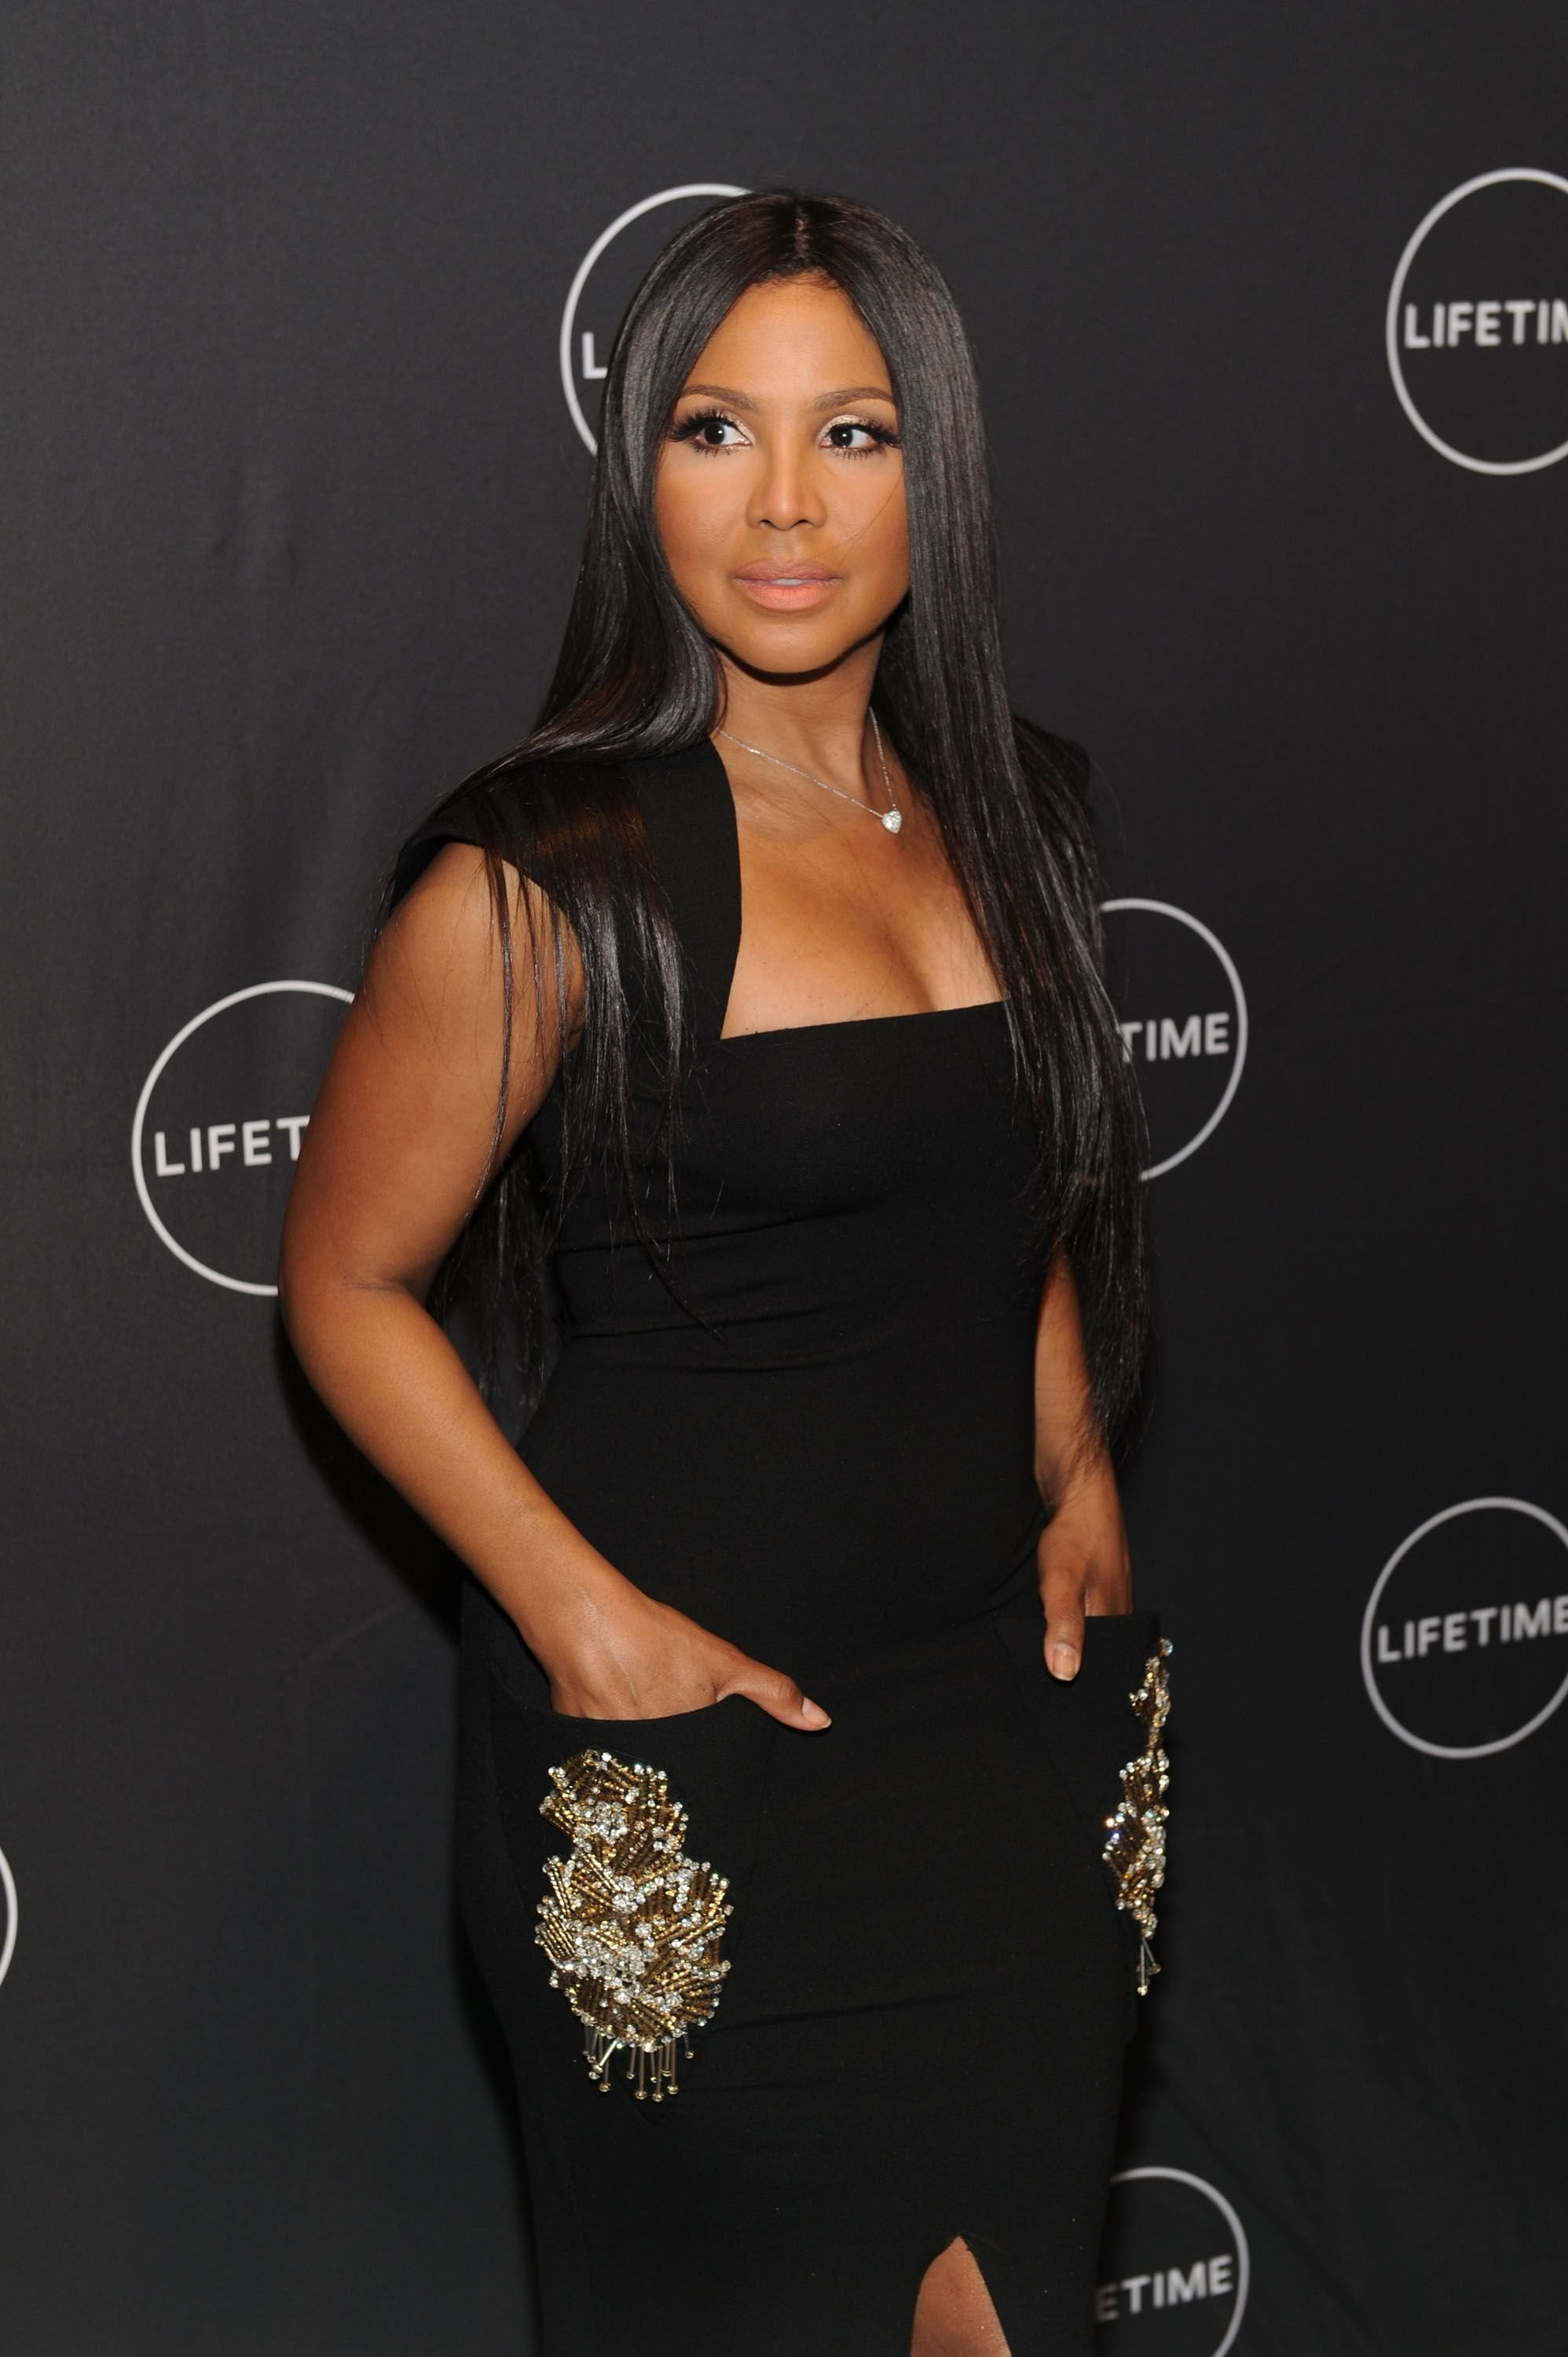 """Toni Braxton at the Lifetime""""s Film,""""Faith Under Fire: The Antoinette Tuff Story"""" red carpet screening and premiere event at NeueHouse Madison Square In New York, NY on January 23, 2018 